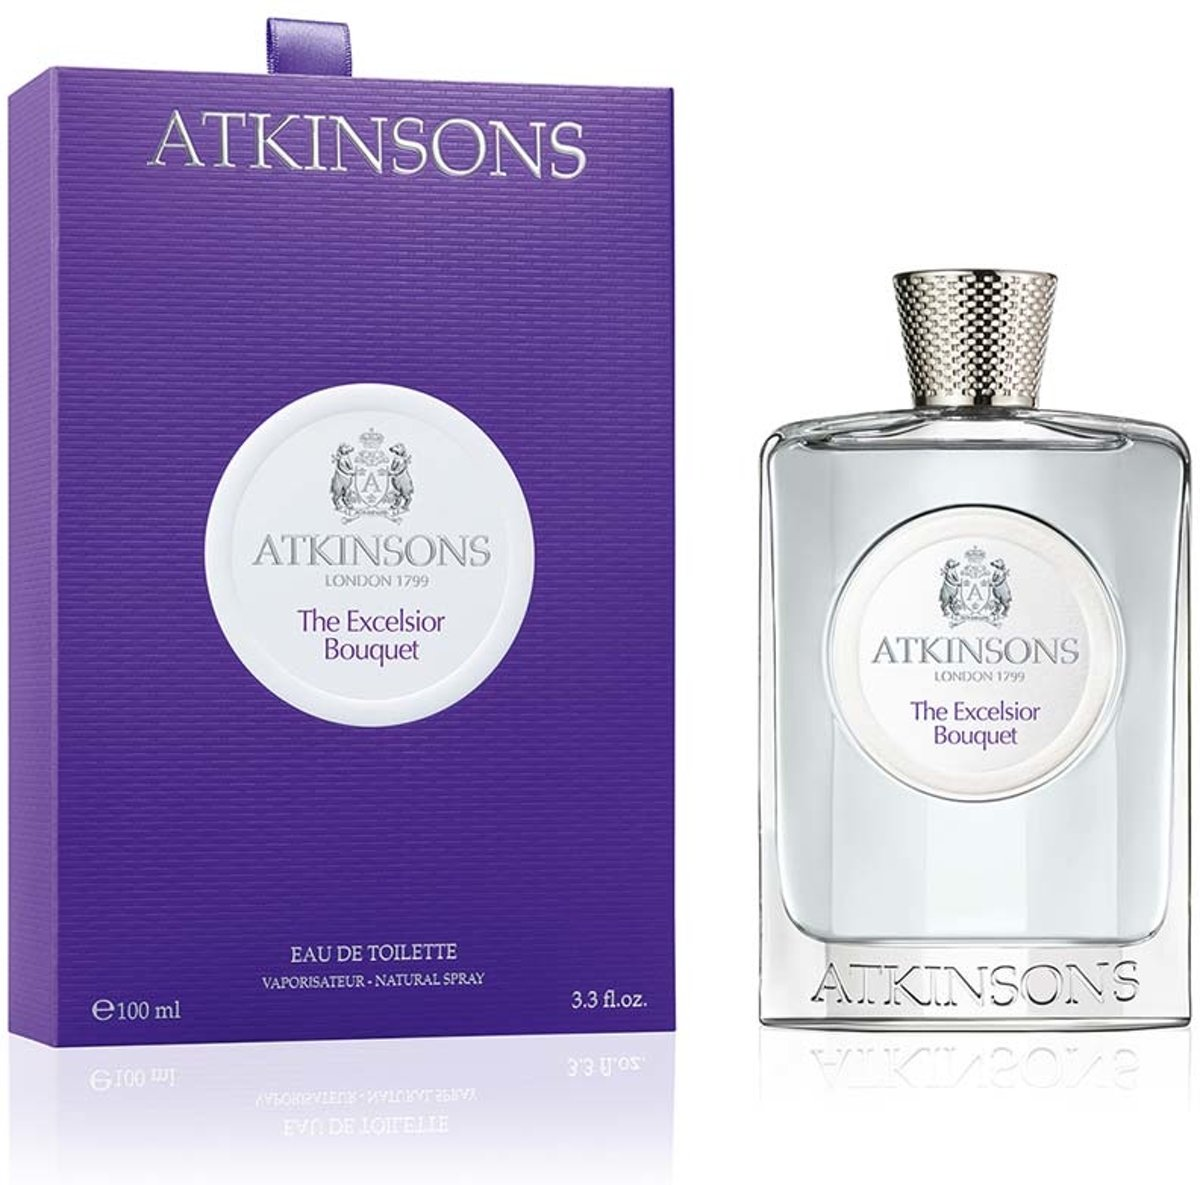 Atkinsons 1799 The Excelsior Bouquet 100ml eau de toilette